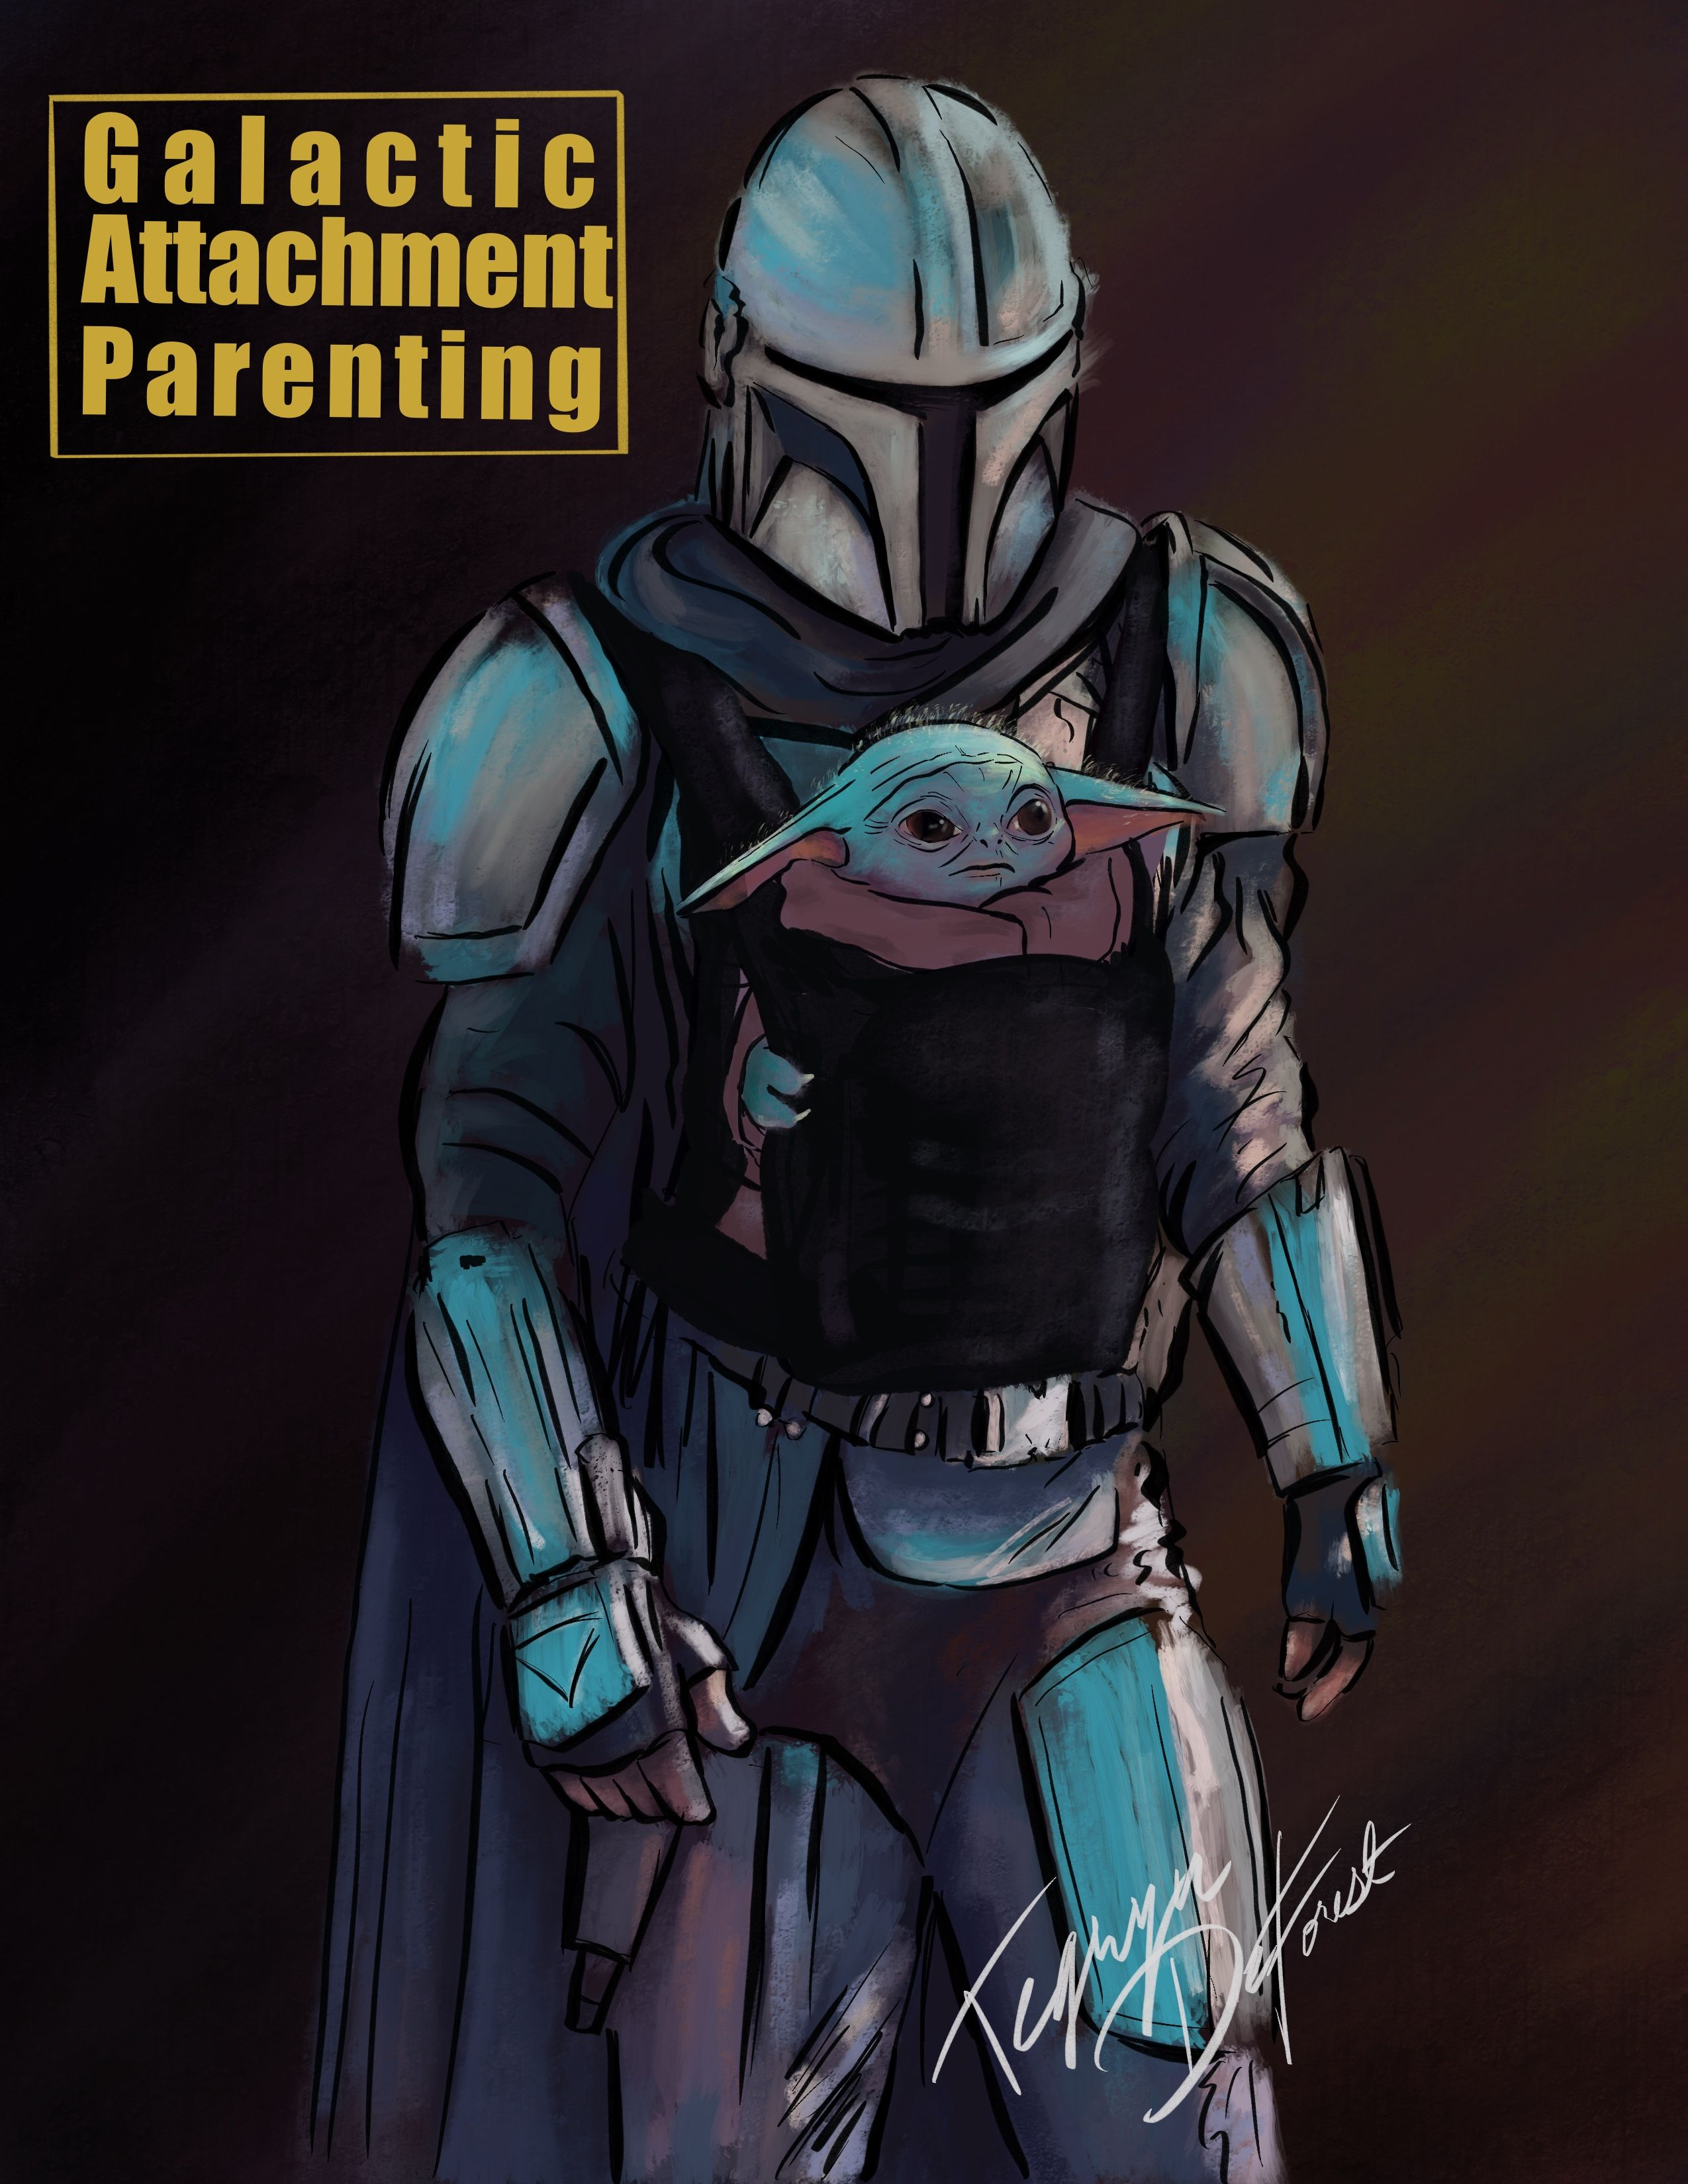 Baby Yoda Carrier In 2020 Star Wars Movies Posters Star Wars Images Star Wars Fandom